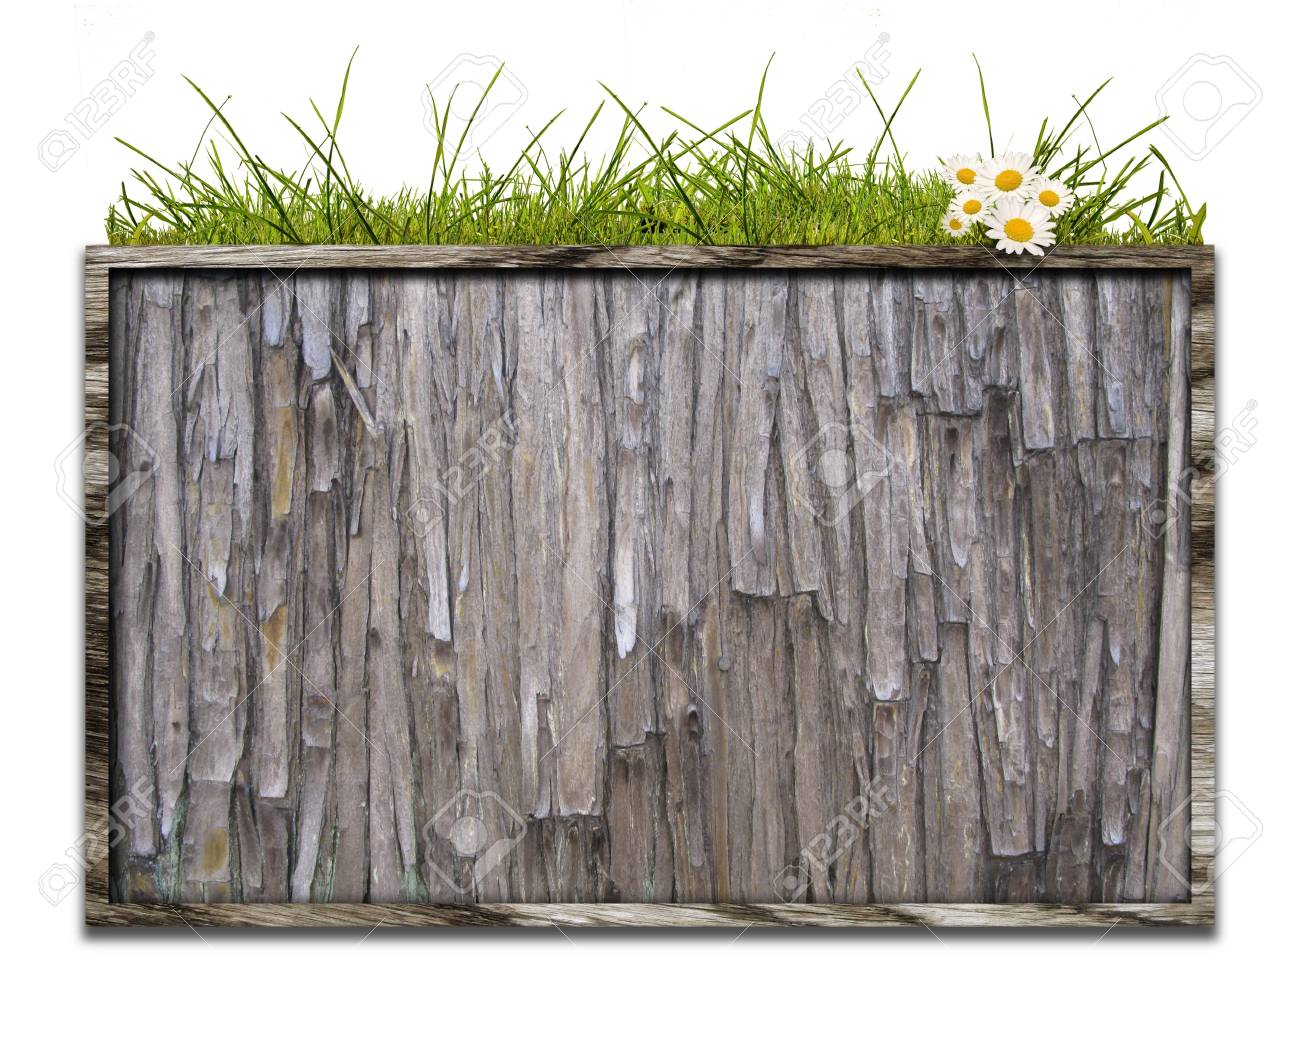 Bulletin board in wooden crate of CG integration Stock Photo - 7826580